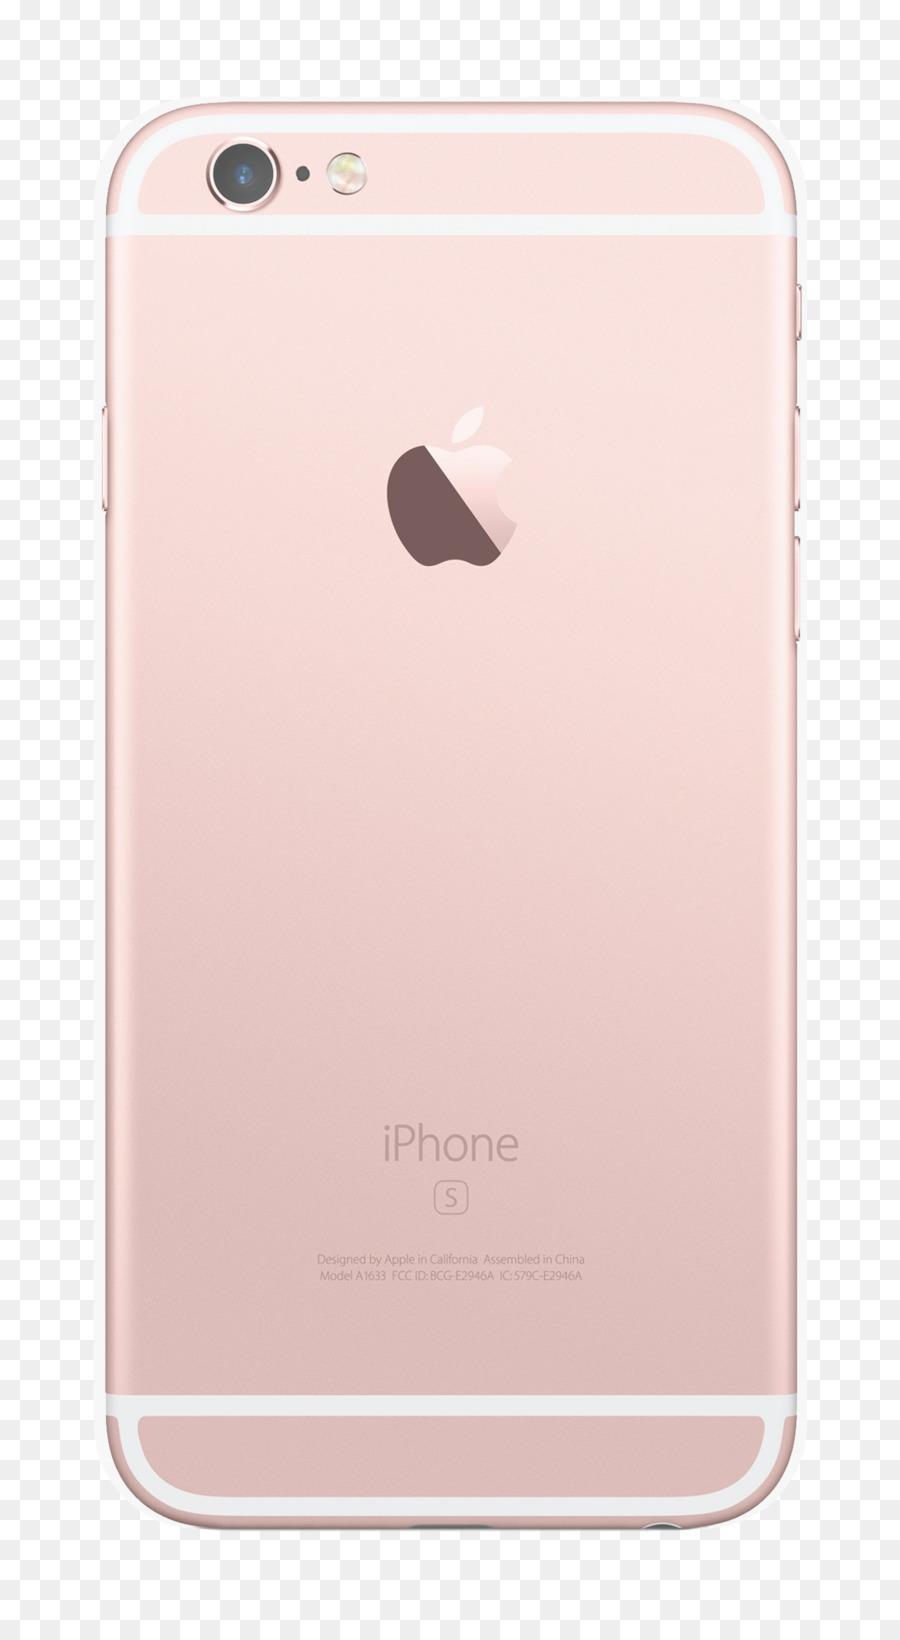 Descarga gratuita de El Iphone 6s Plus, Iphone, El Iphone 6 Plus imágenes PNG